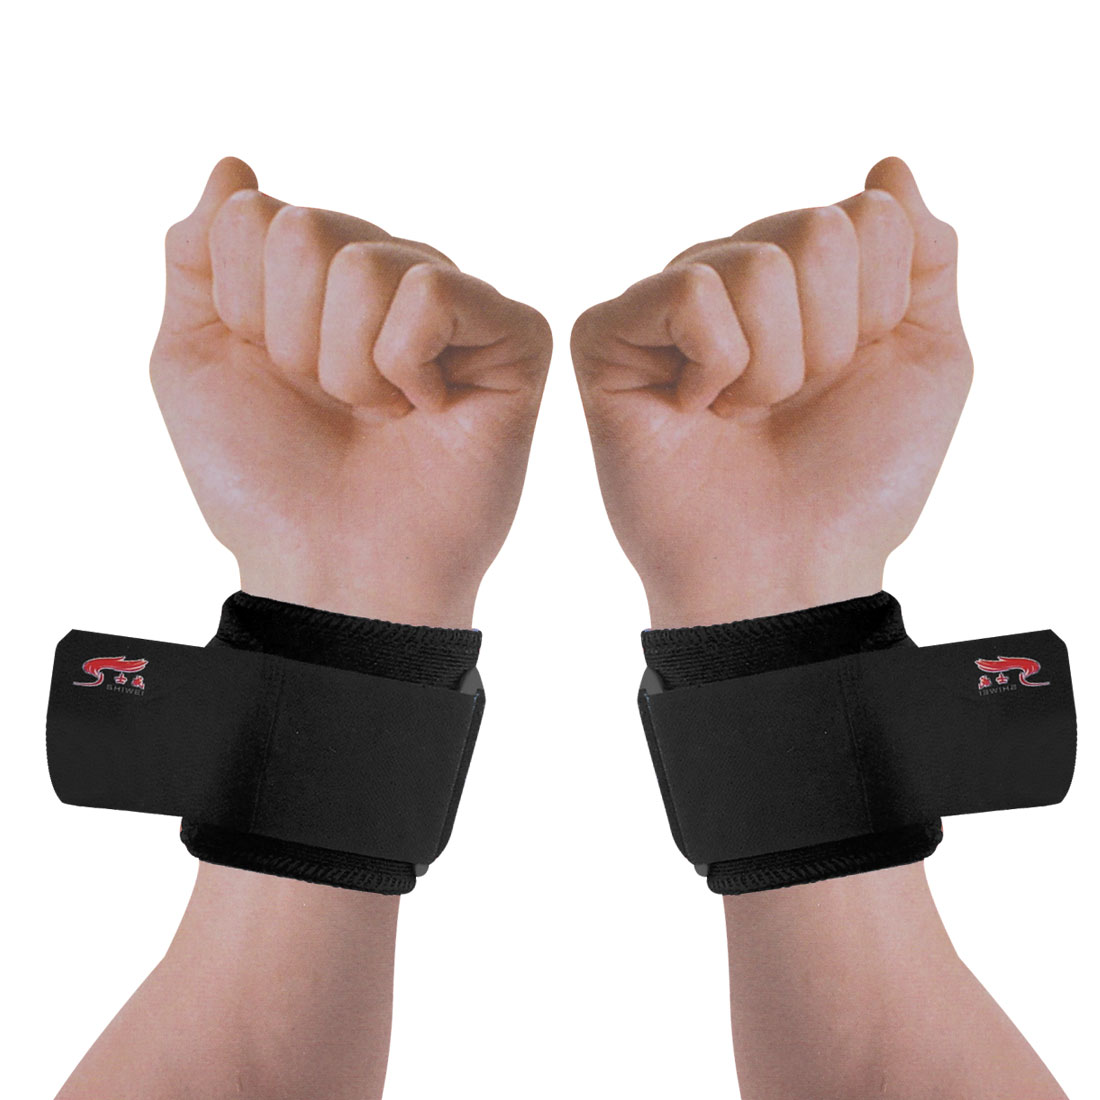 2 Pcs Black Hook Loop Fastener Adjustable Wrap Around Wrist Support Protector Brace